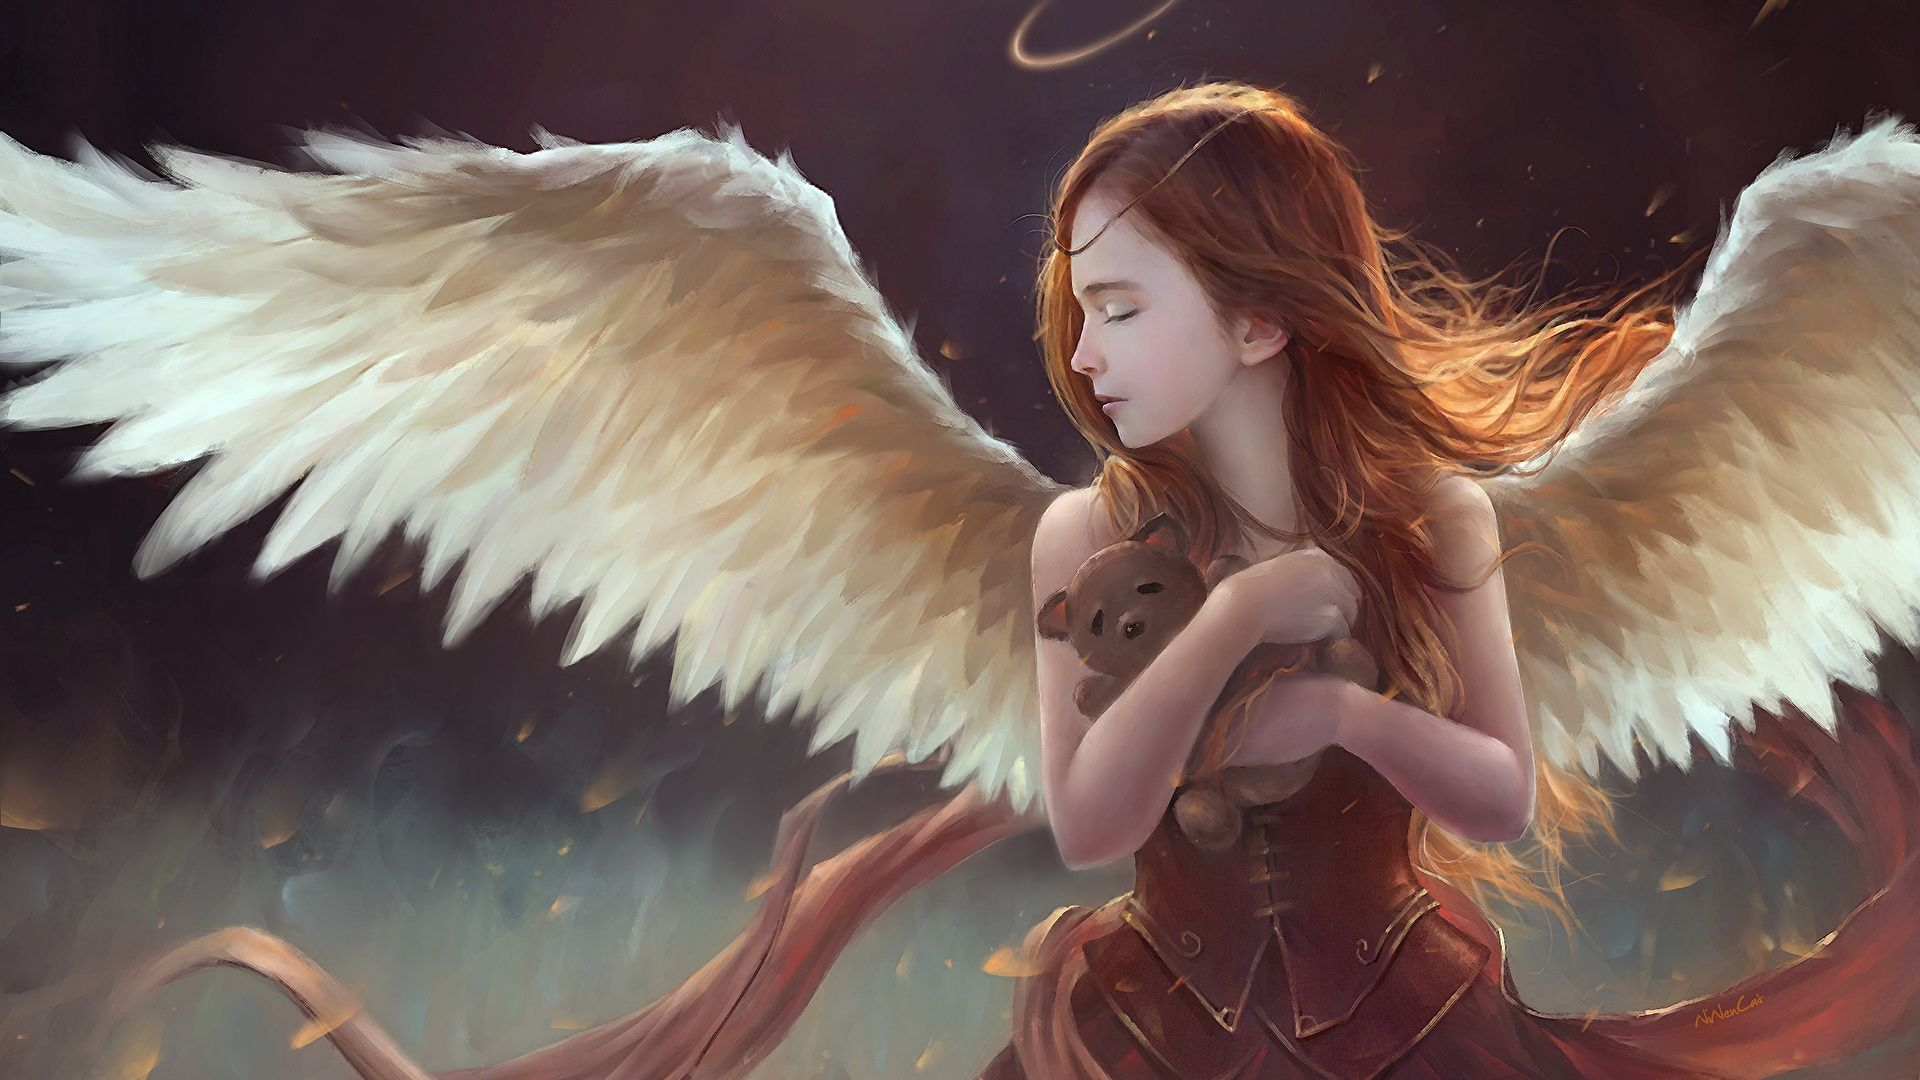 The Girl With Wings